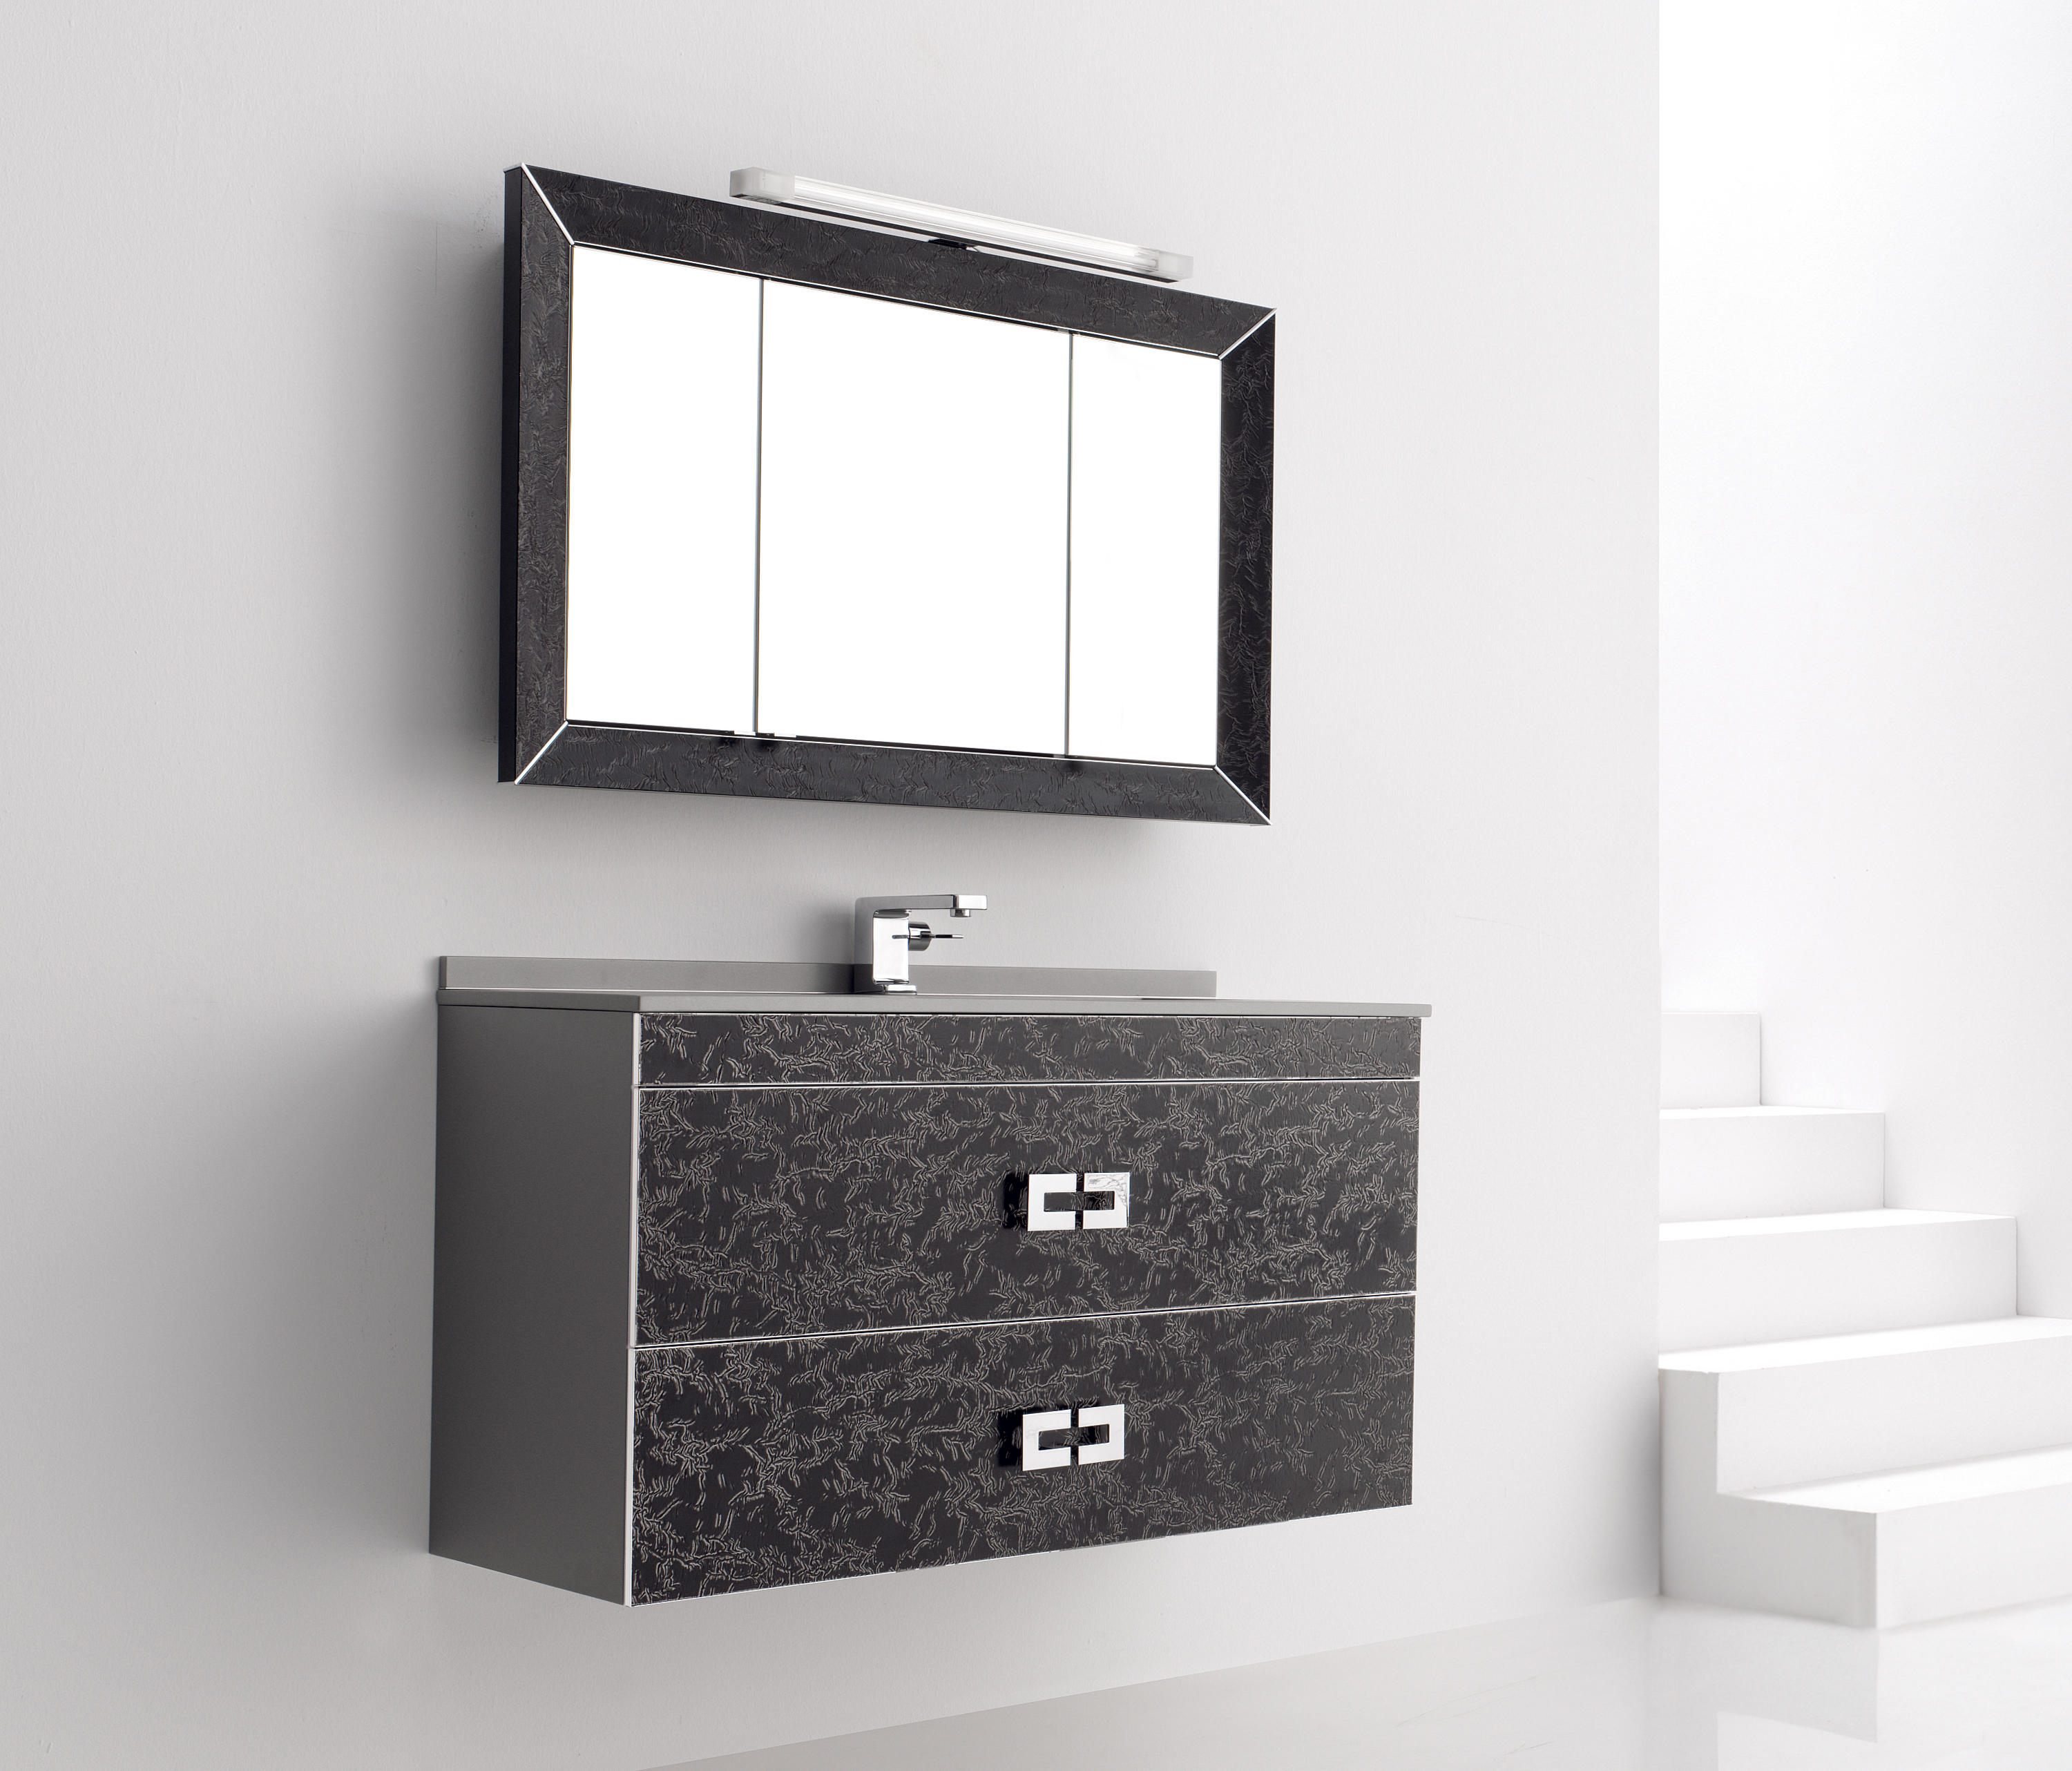 Black Vanity Units For Bathroom. Fussion Clouds Black  Vanity units FIORA BATHROOM FURNITURE Research and select products online